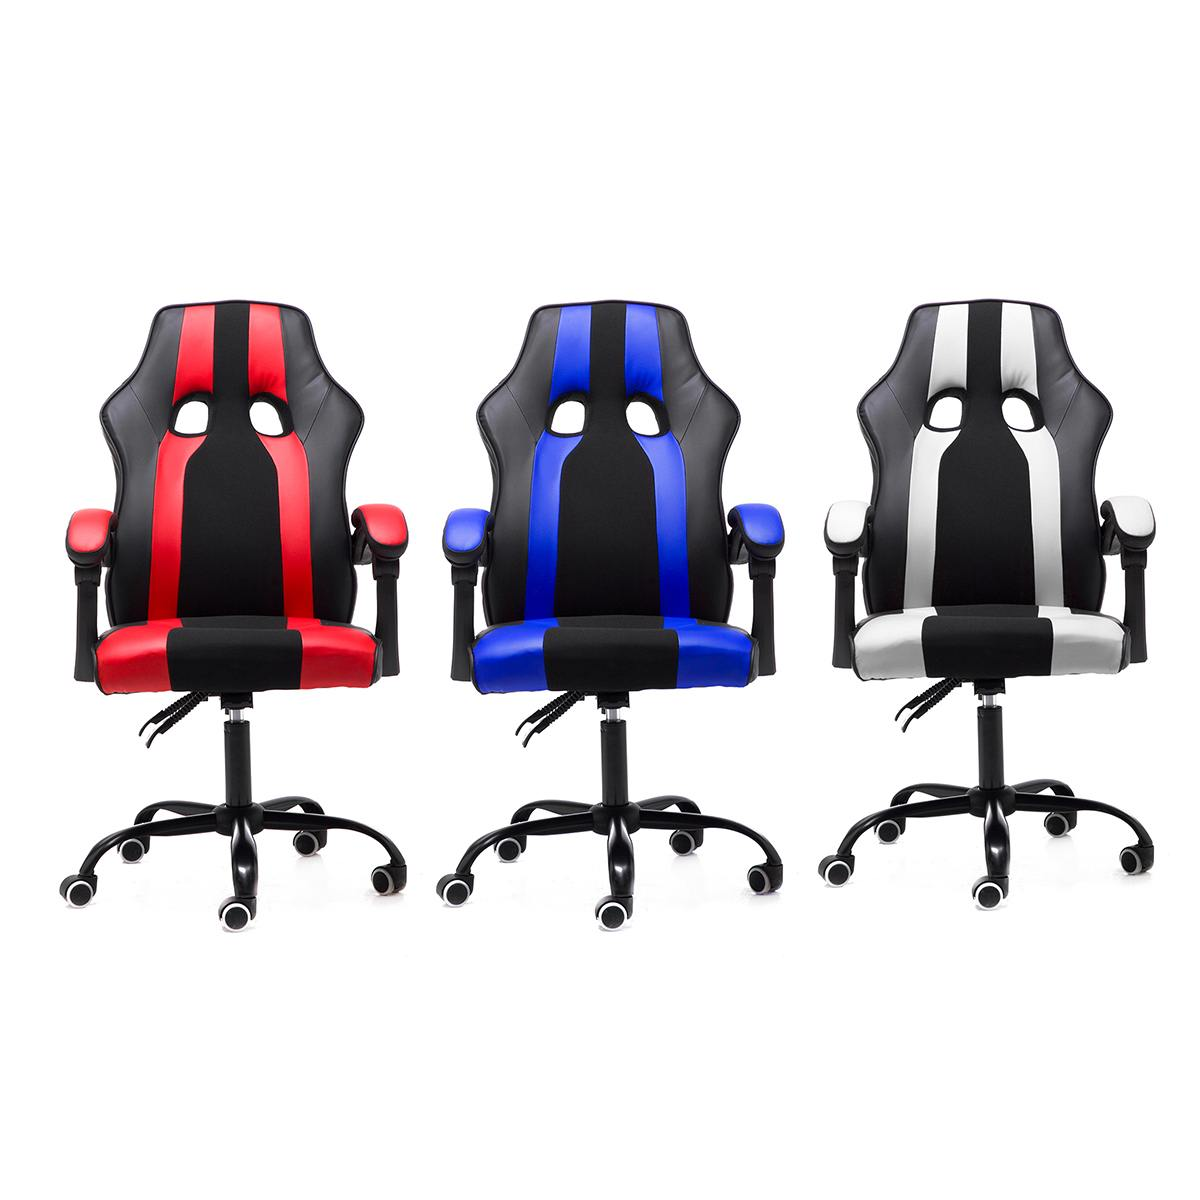 Haf9eea3cf2614afd914edcd87bea1325U - WCG Gaming Chair Computer Armchair Office Chairs Home Swivel Massage Chair Lifting Adjustable Desk Chair Lying Recliner Chair